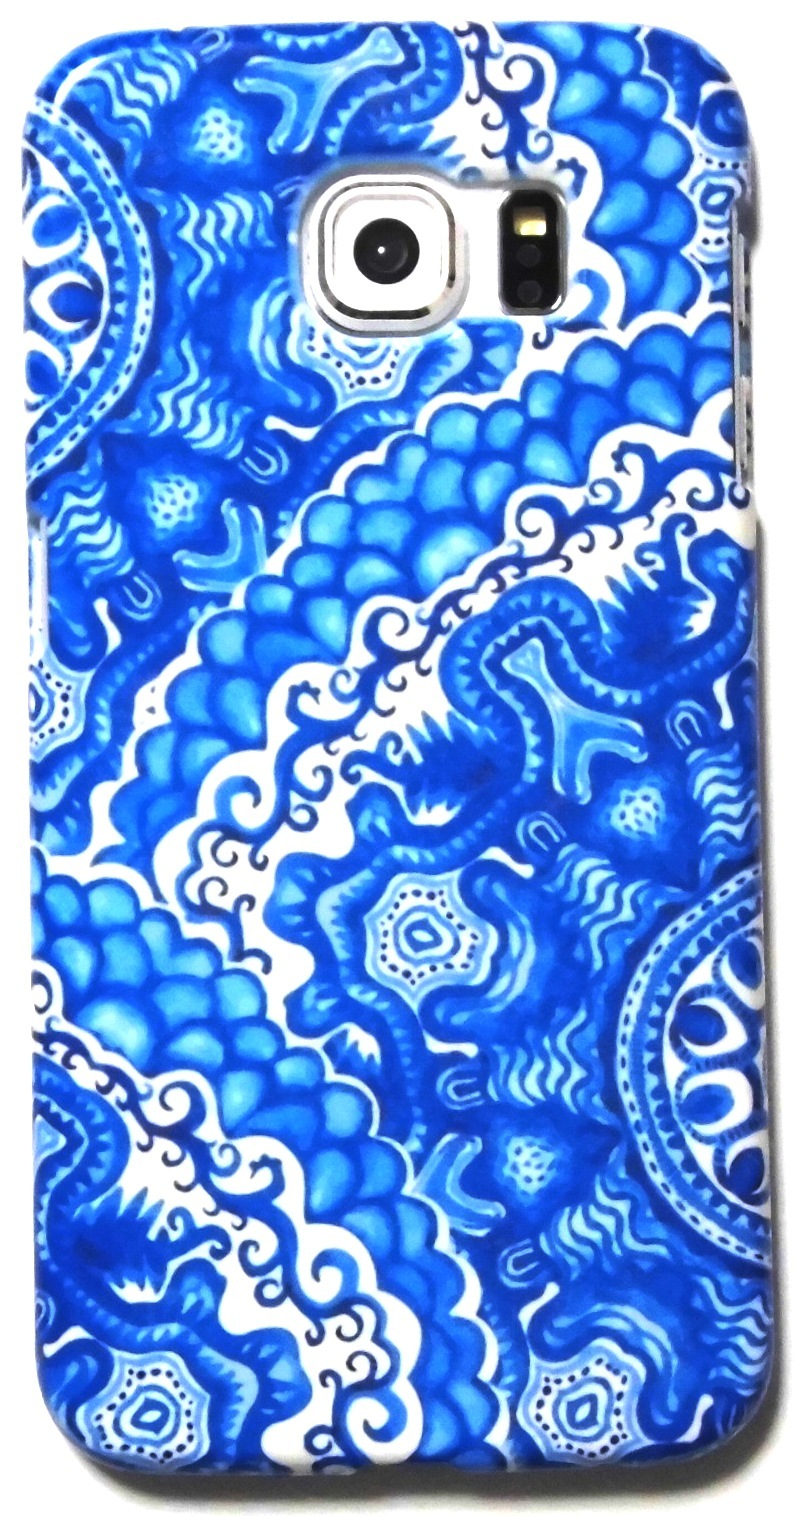 Watercolor galaxy s6 case (5)11